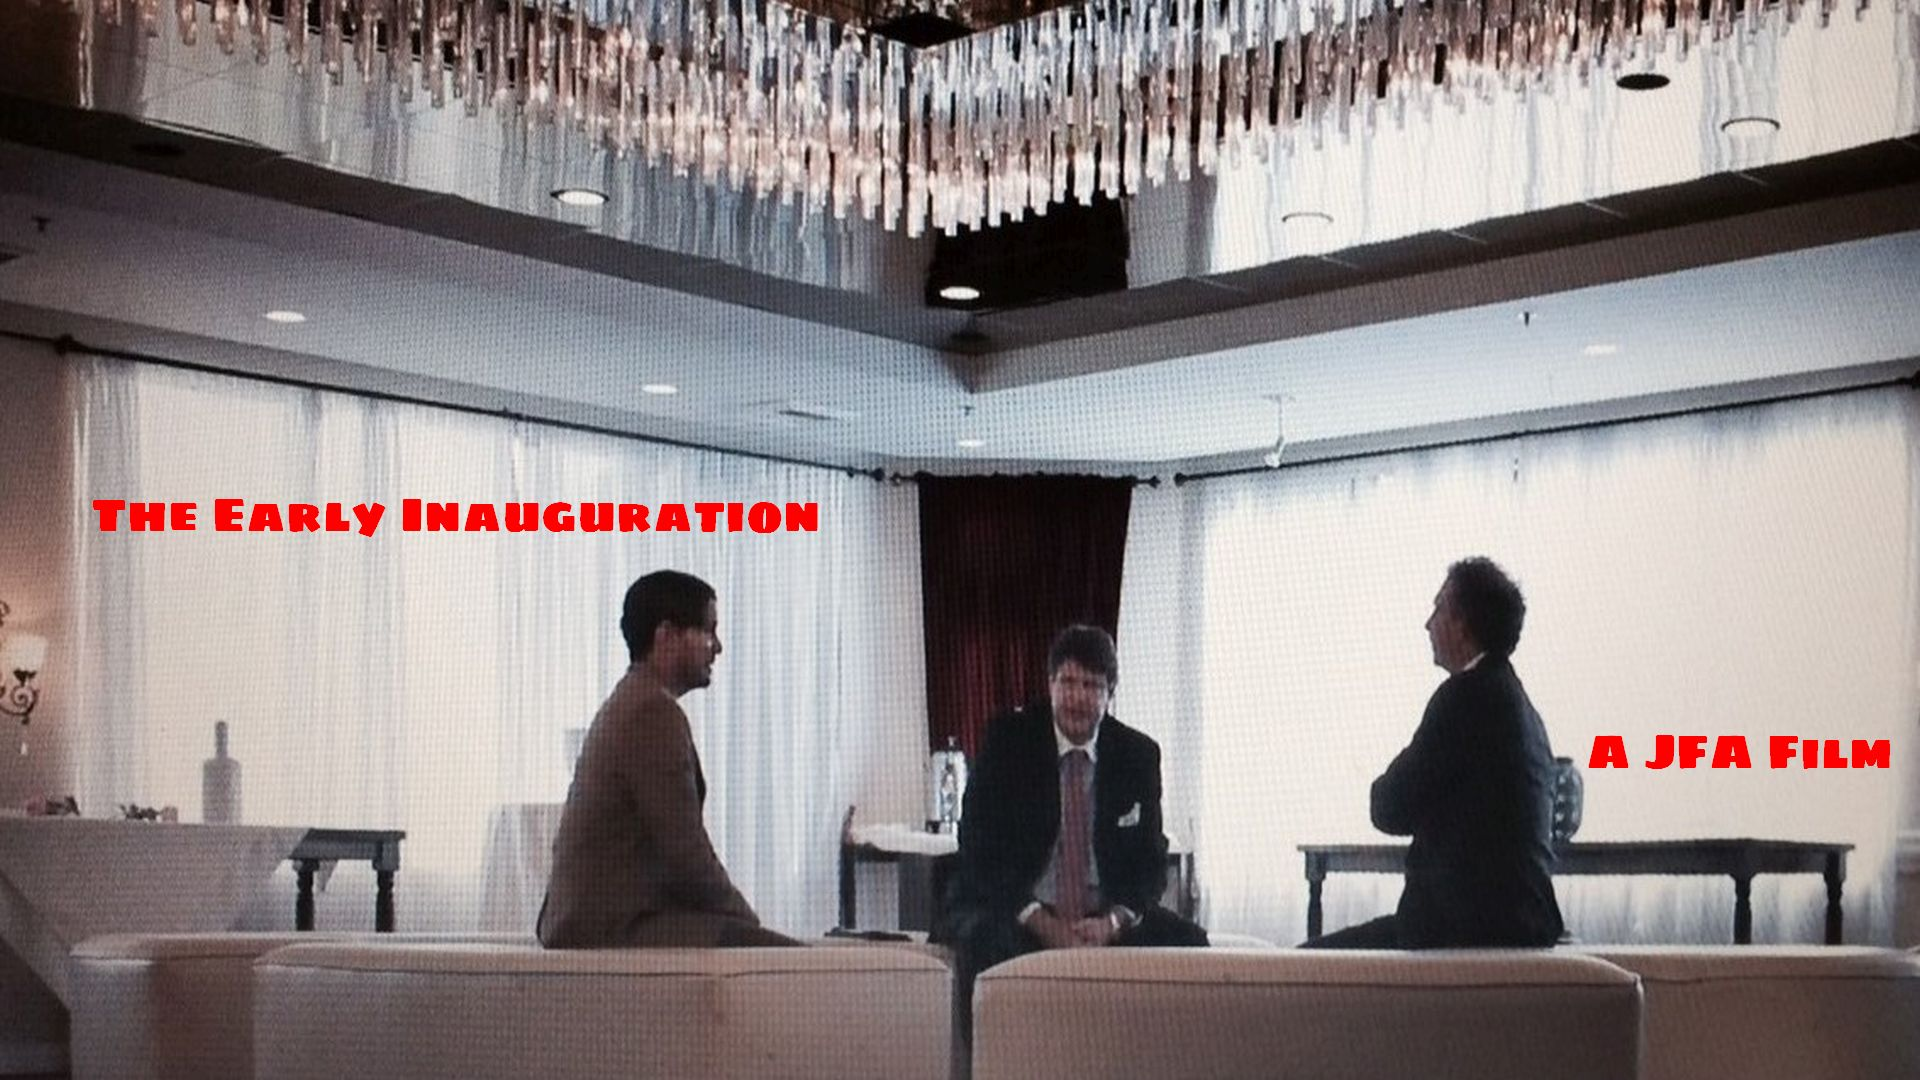 The Early Inauguration